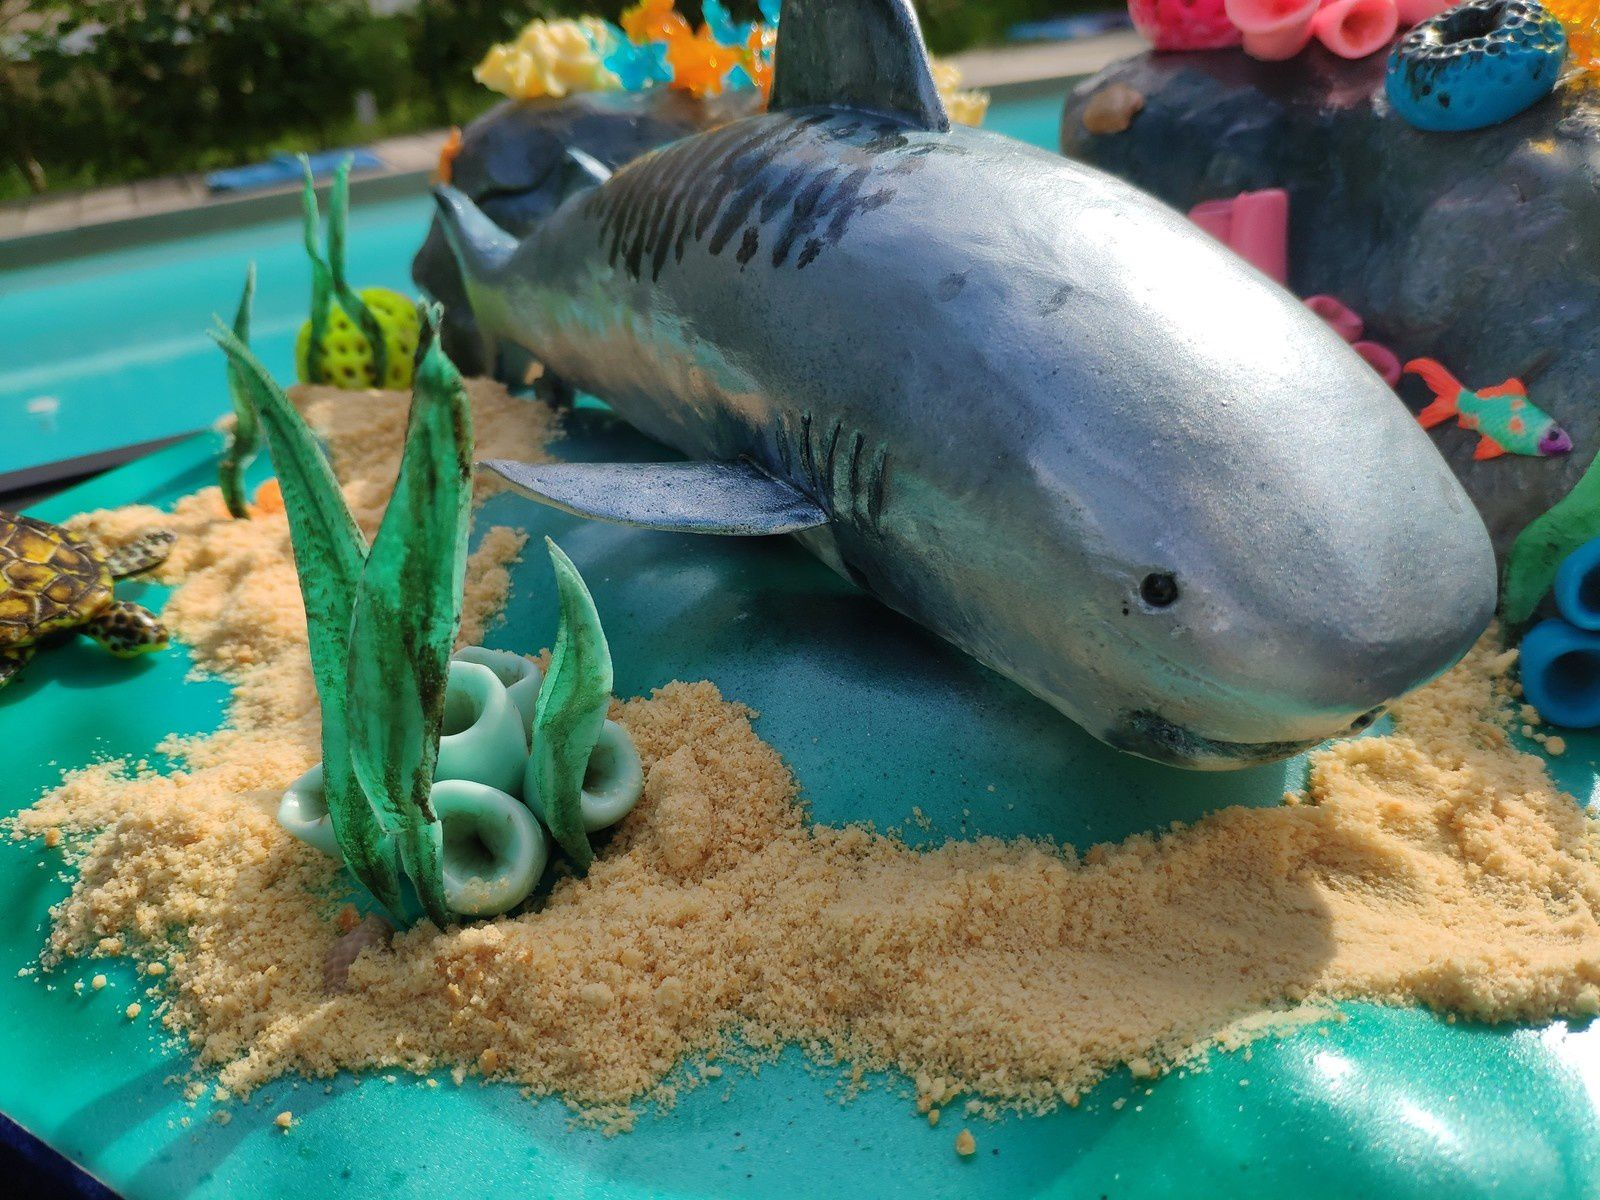 GATEAU REQUIN TIGRE ET FONDS MARINS - SHARK CAKE AND REEFS